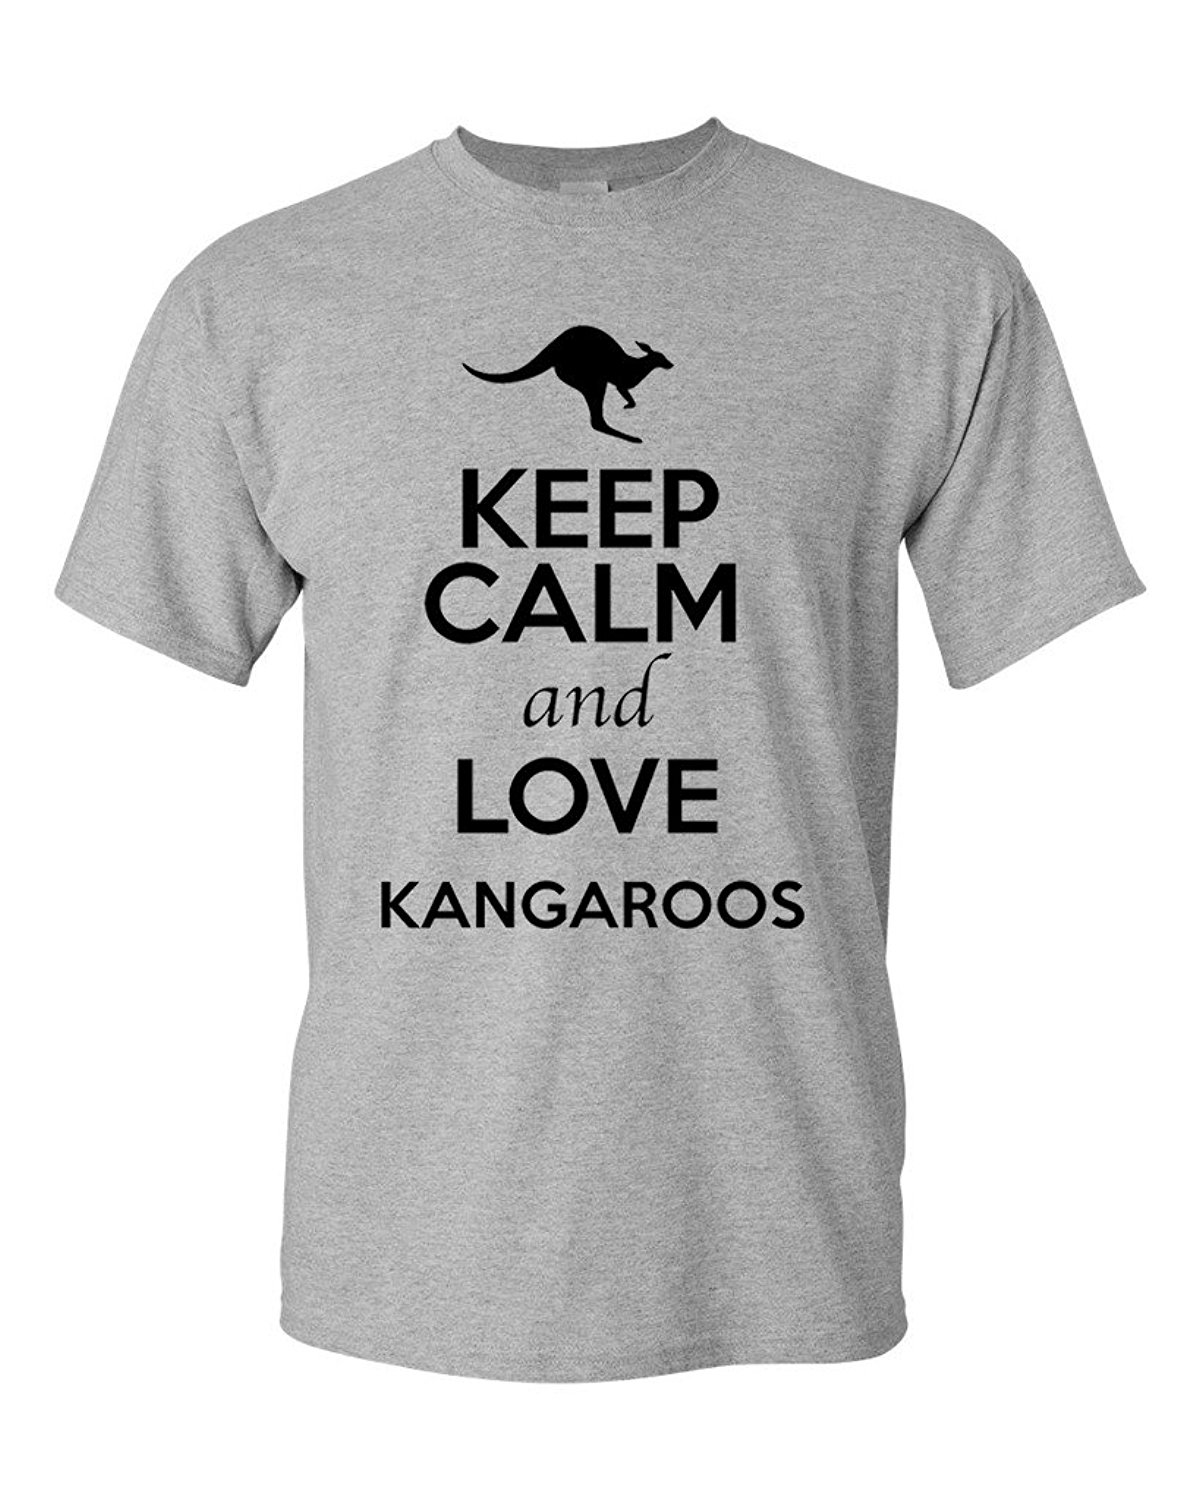 Design t shirt graphics online - Design T Shirt Graphics Online Online T Shirts Design Keep Calm And Love Kangaroo